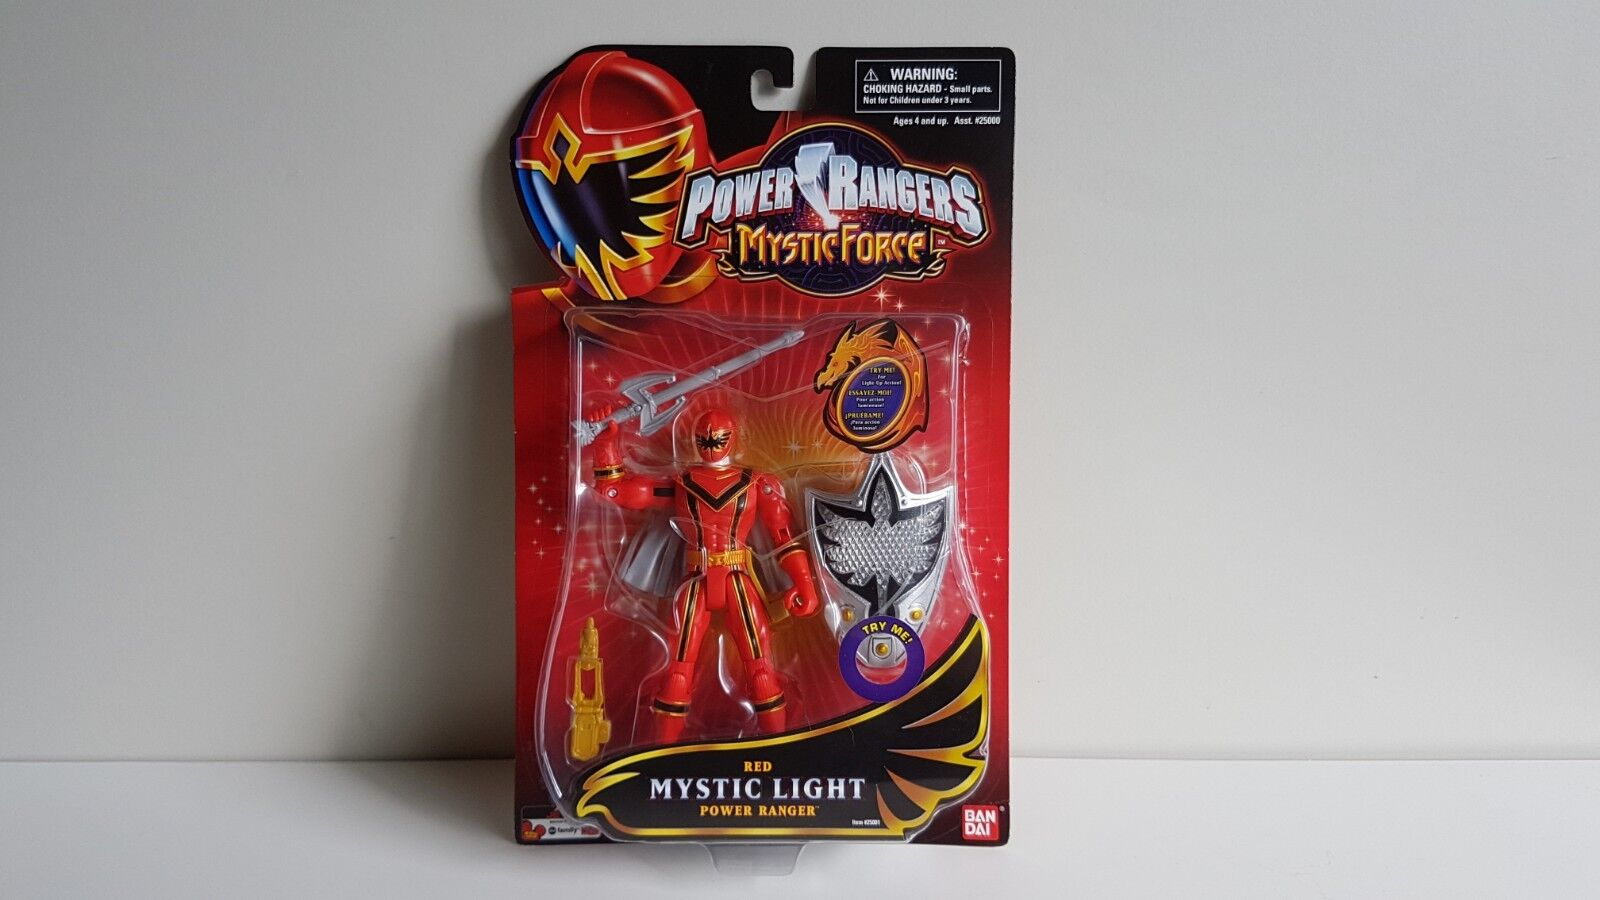 Power Rangers Mystic Force - ROT MYSTIC LIGHT POWER RANGER Action Figure NEW MOC